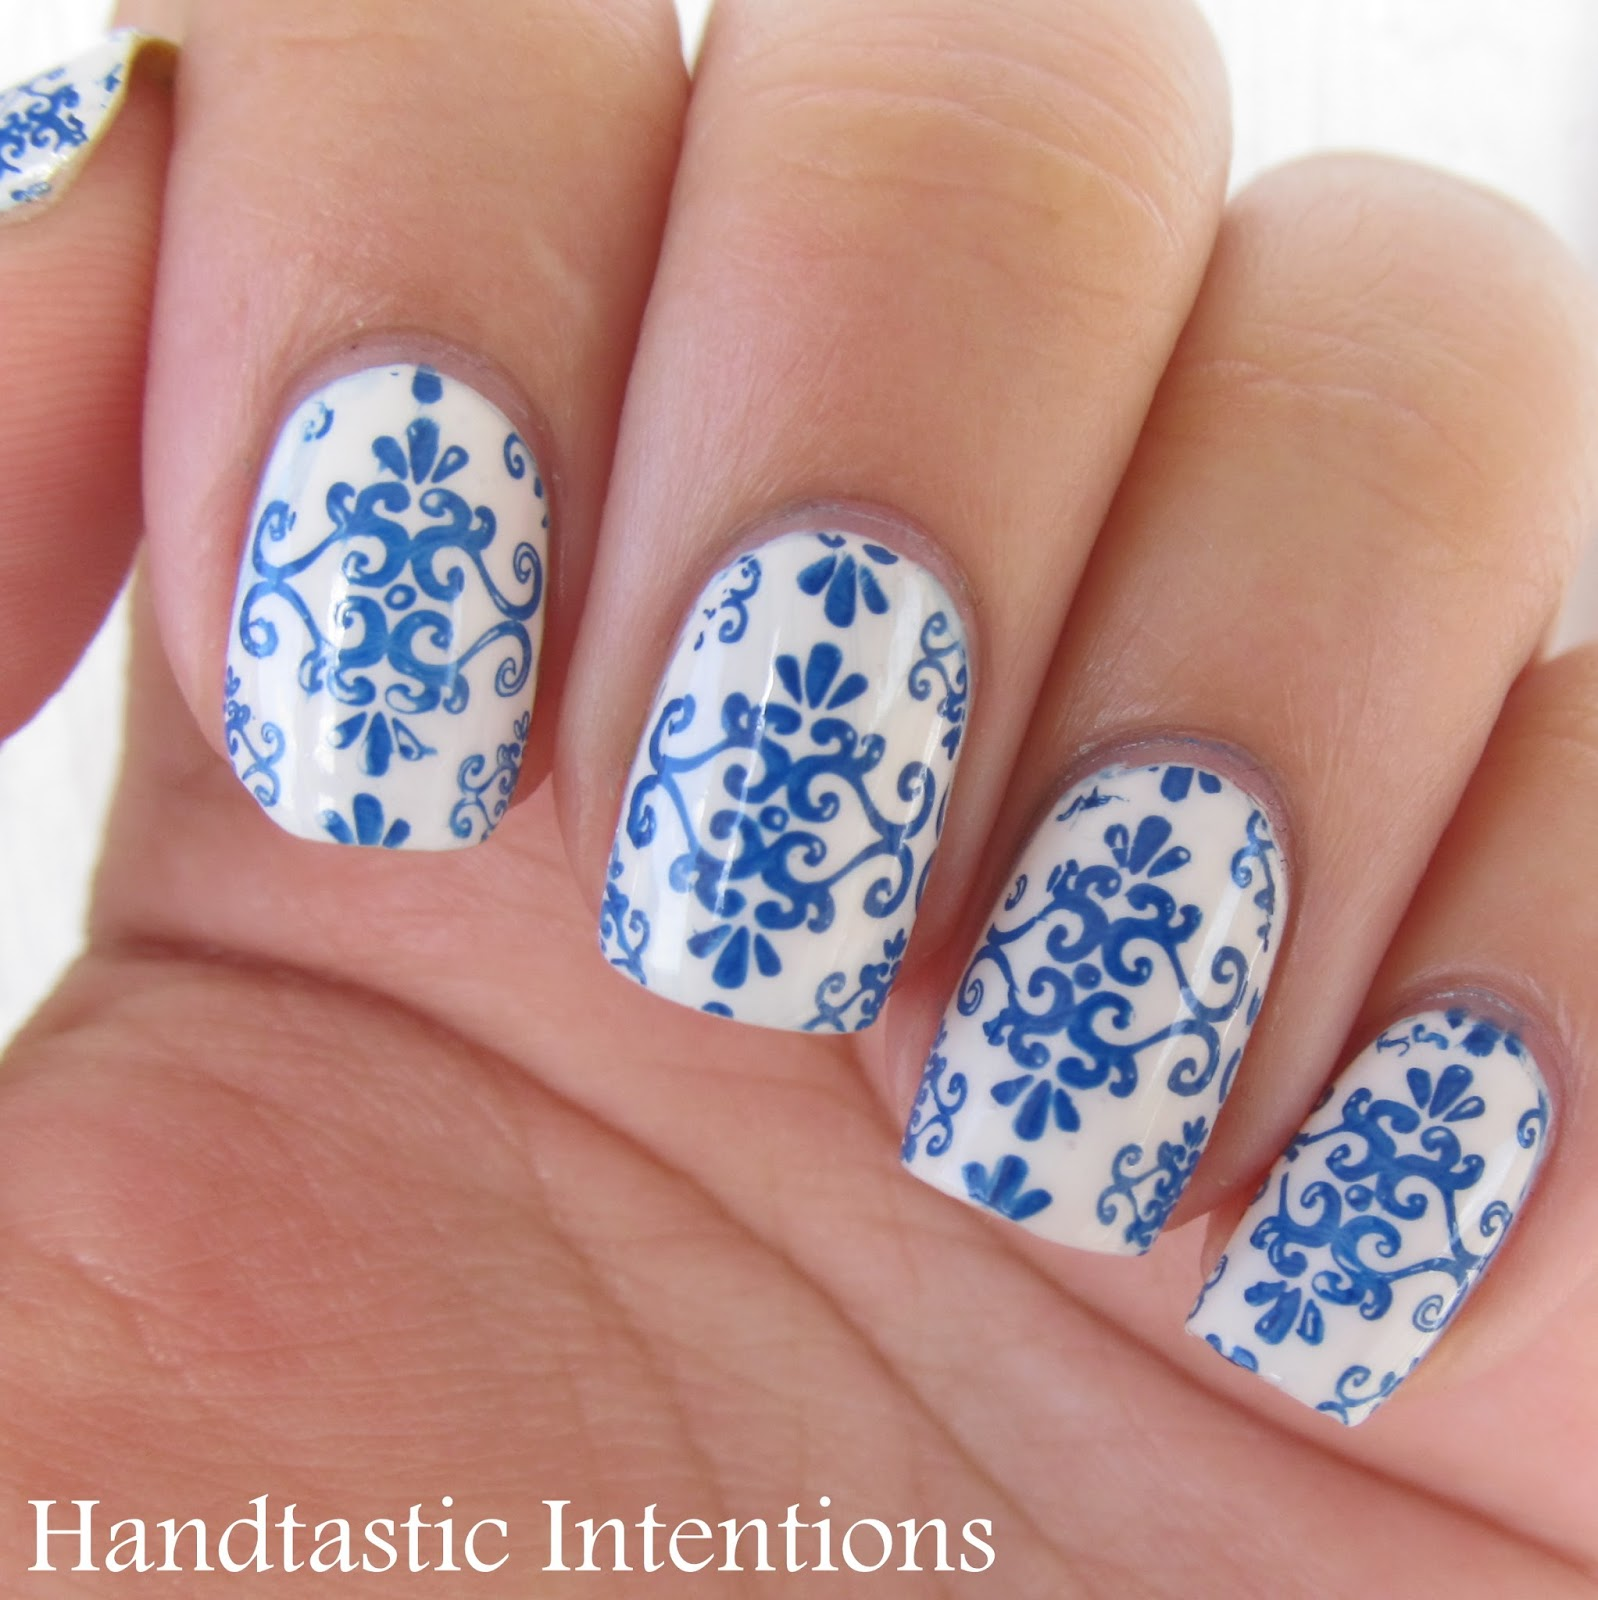 Handtastic Intentions: Nail Art: Blue and White Ceramics ...